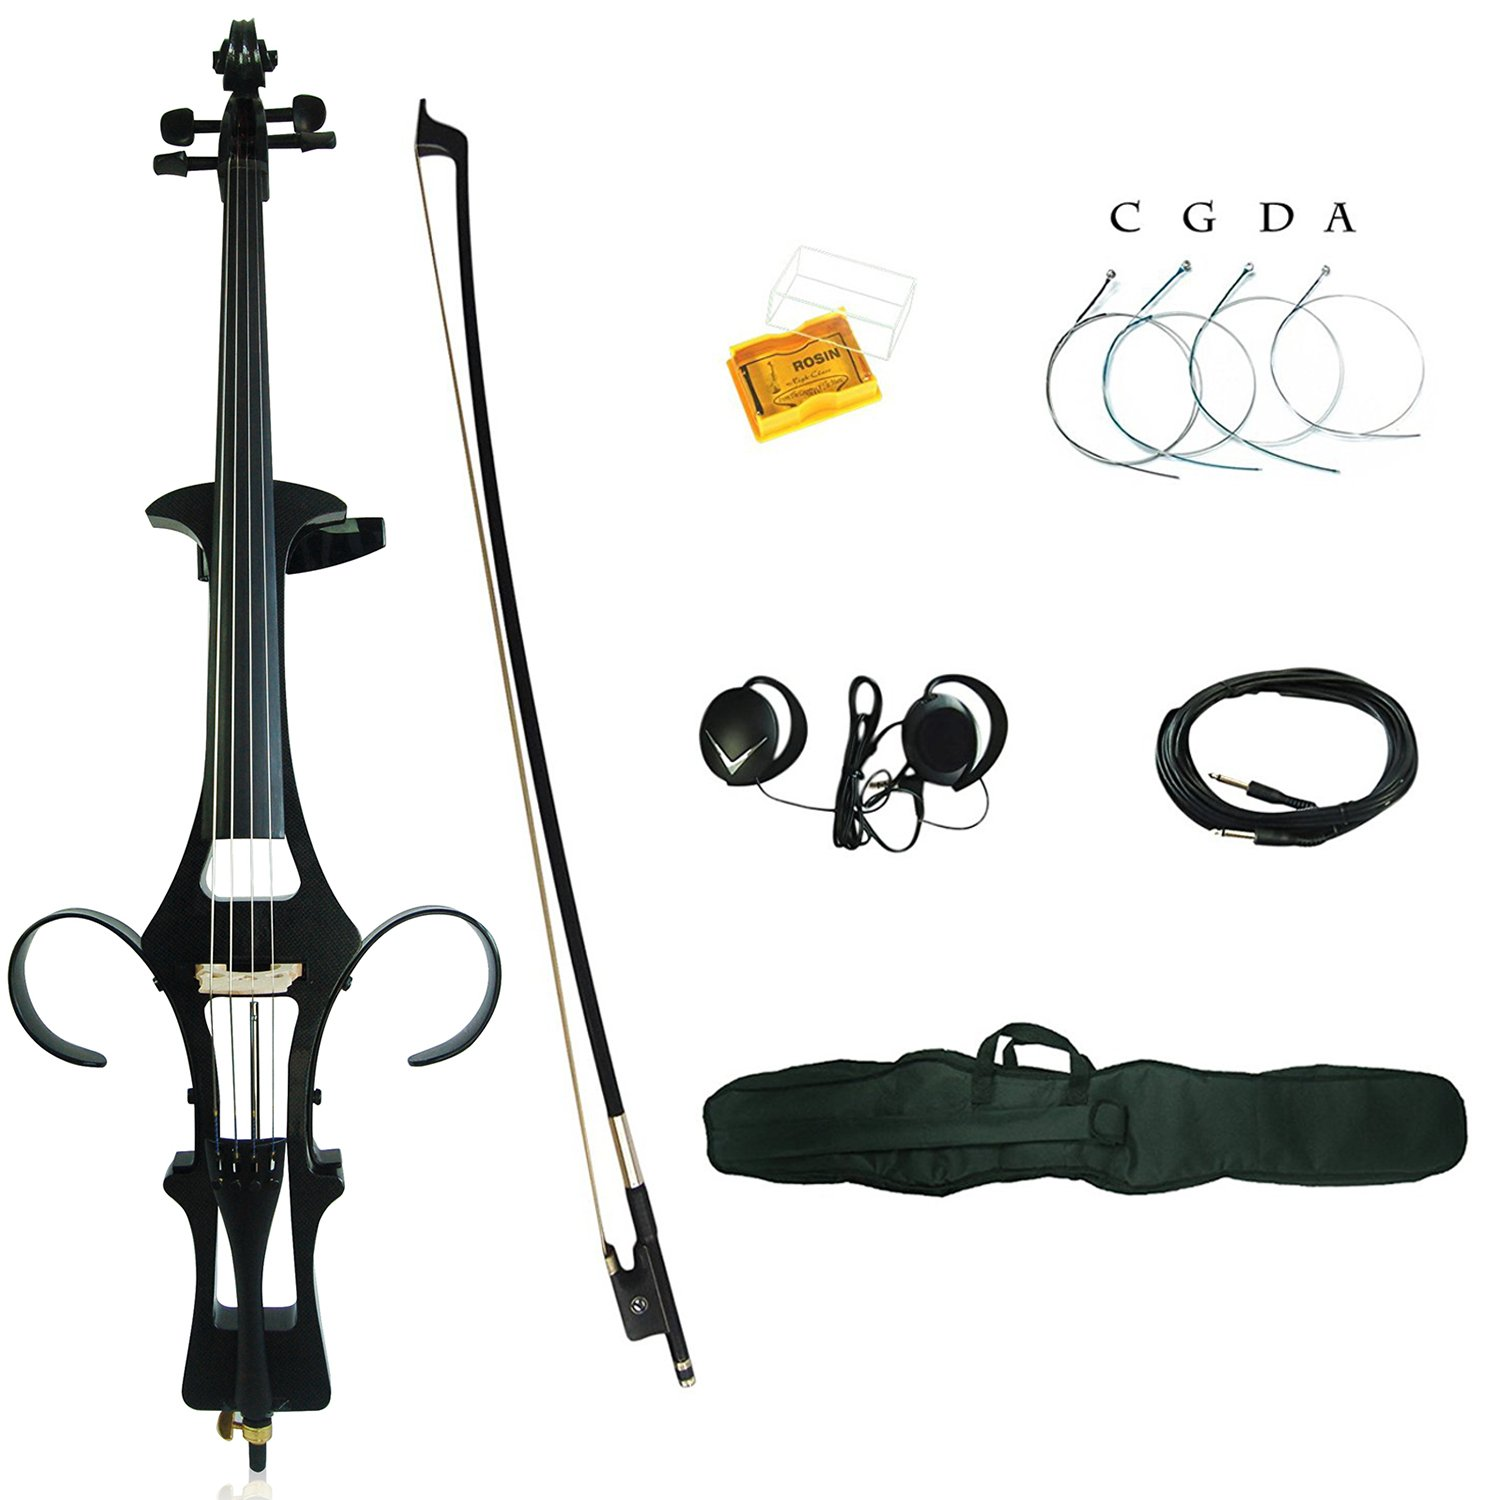 Leeche Premium 4/4 Full Size Solid Wood Electric Cello Violoncello Maple Solid Wood body Ebony Fittings with Bag, Bow, Rosin, Aux Cable, Earphone, Extra set of Strings(Carbon Fiber) by leeche